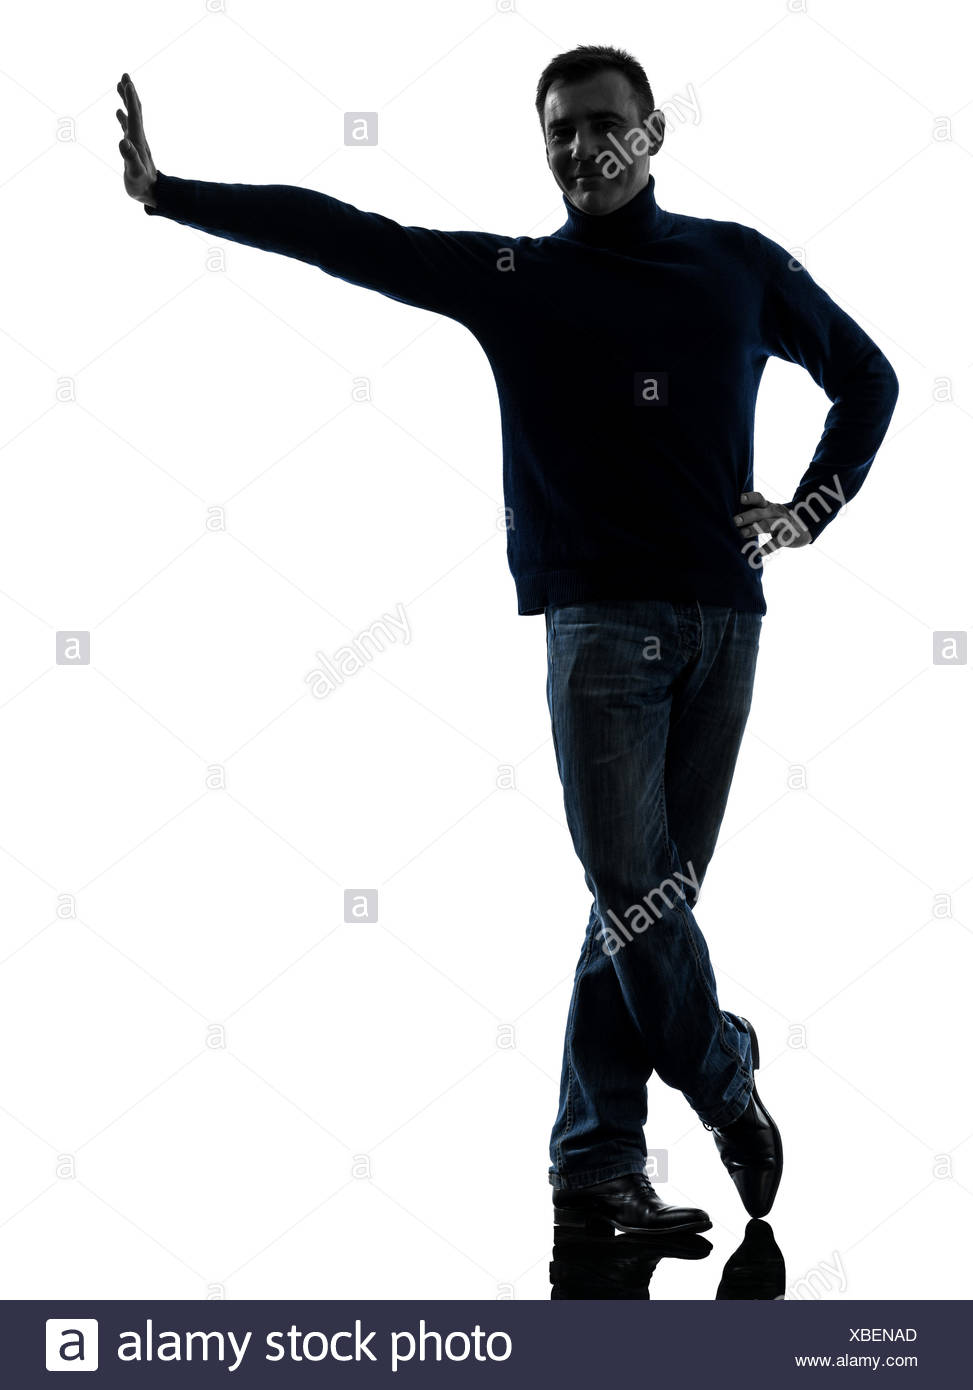 973x1390 Silhouette Man Leaning Against Wall Stock Photos Amp Silhouette Man